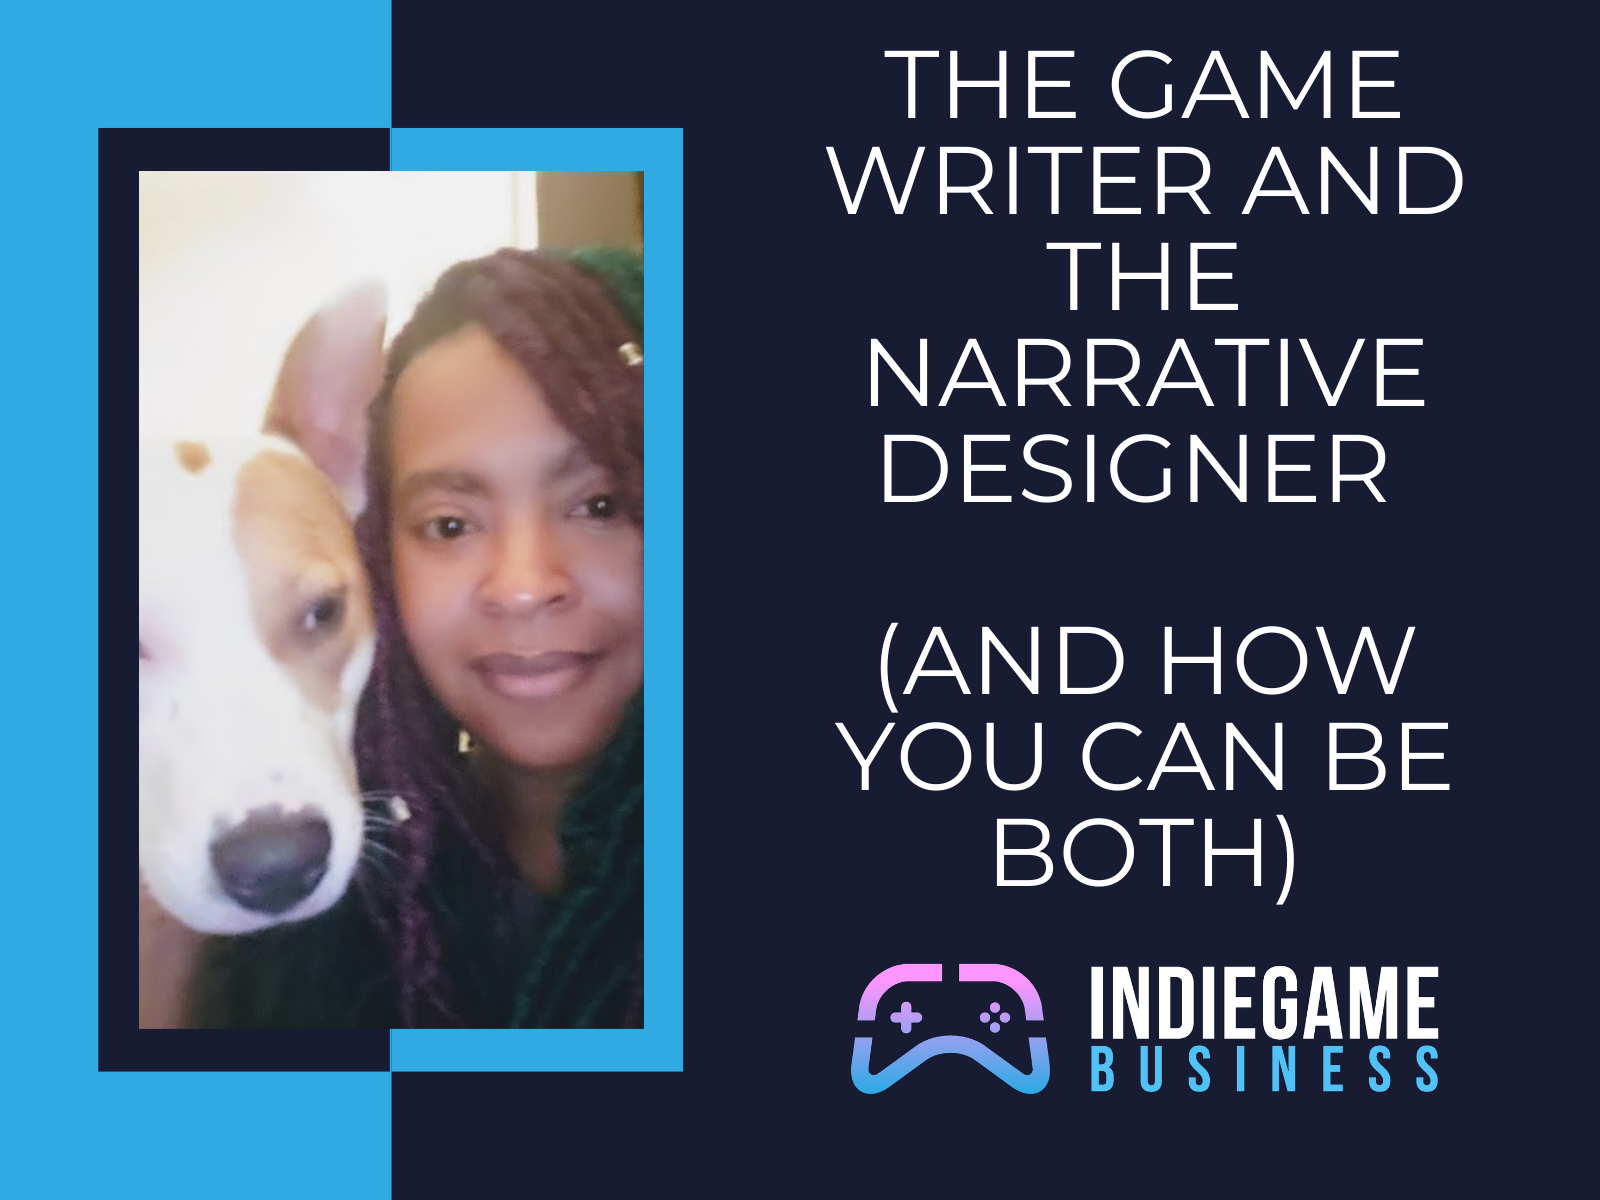 The Game Writer and the Narrative Designer (and How You Can Be Both)